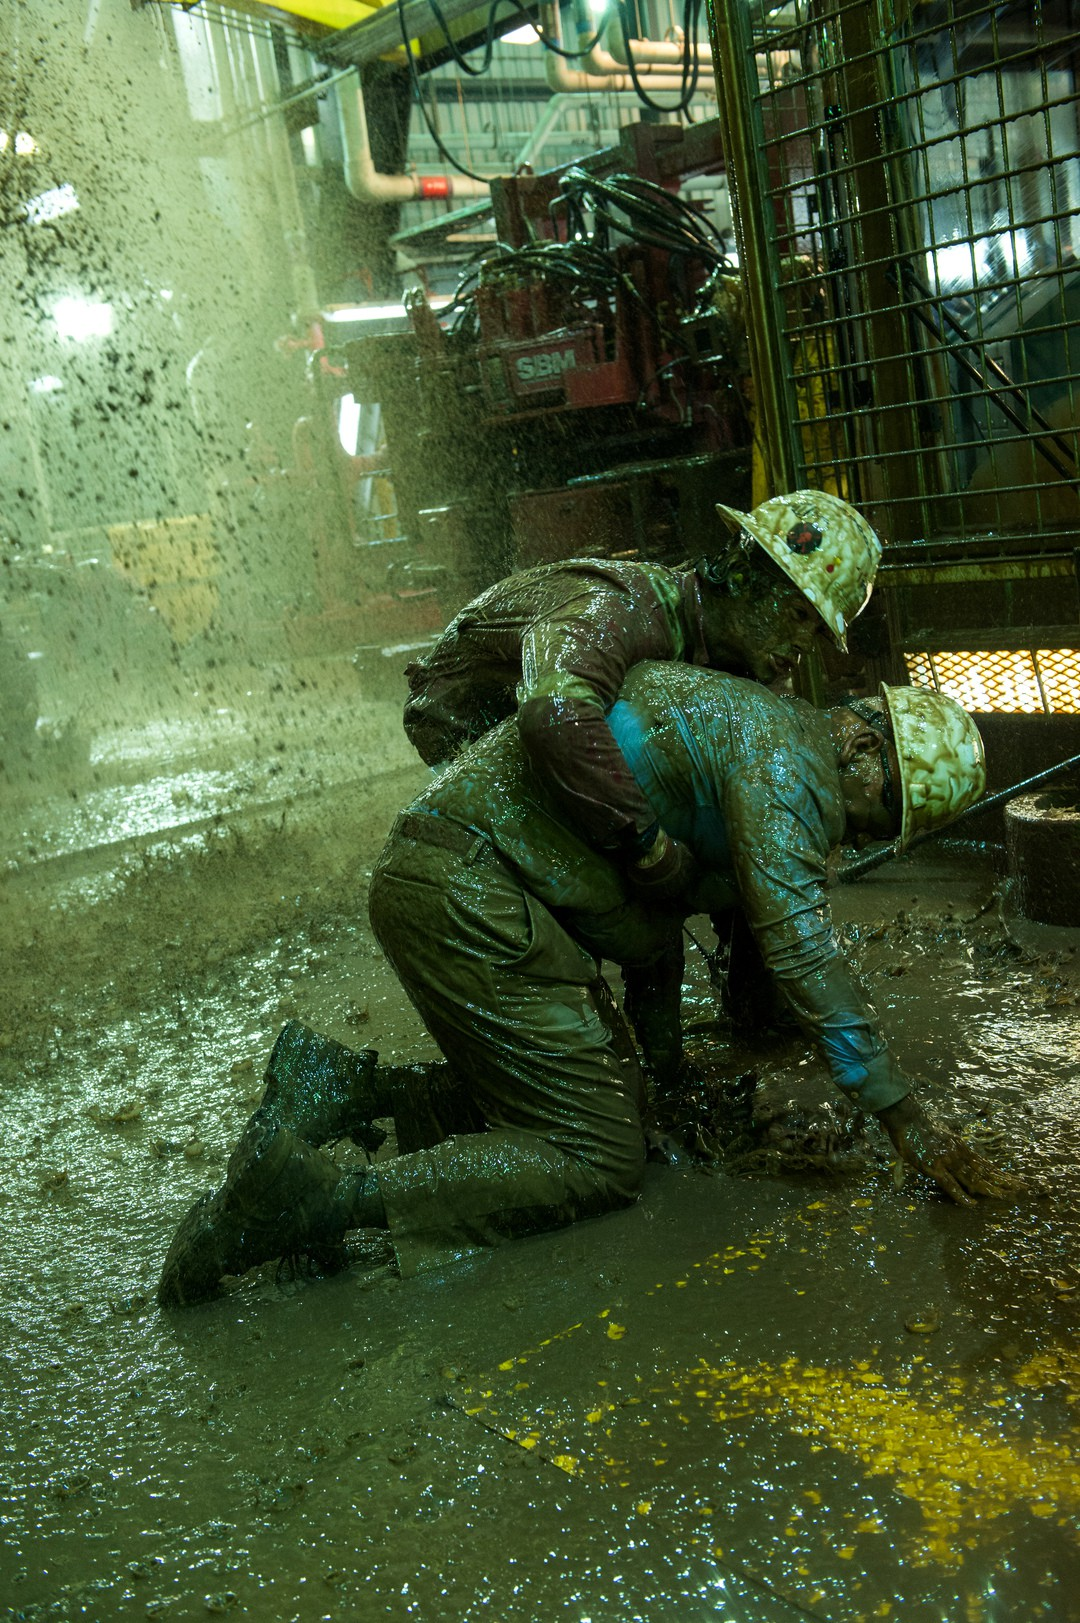 Deepwater Horizon - Behind-the-Scenes Clips - Bild 6 von 23